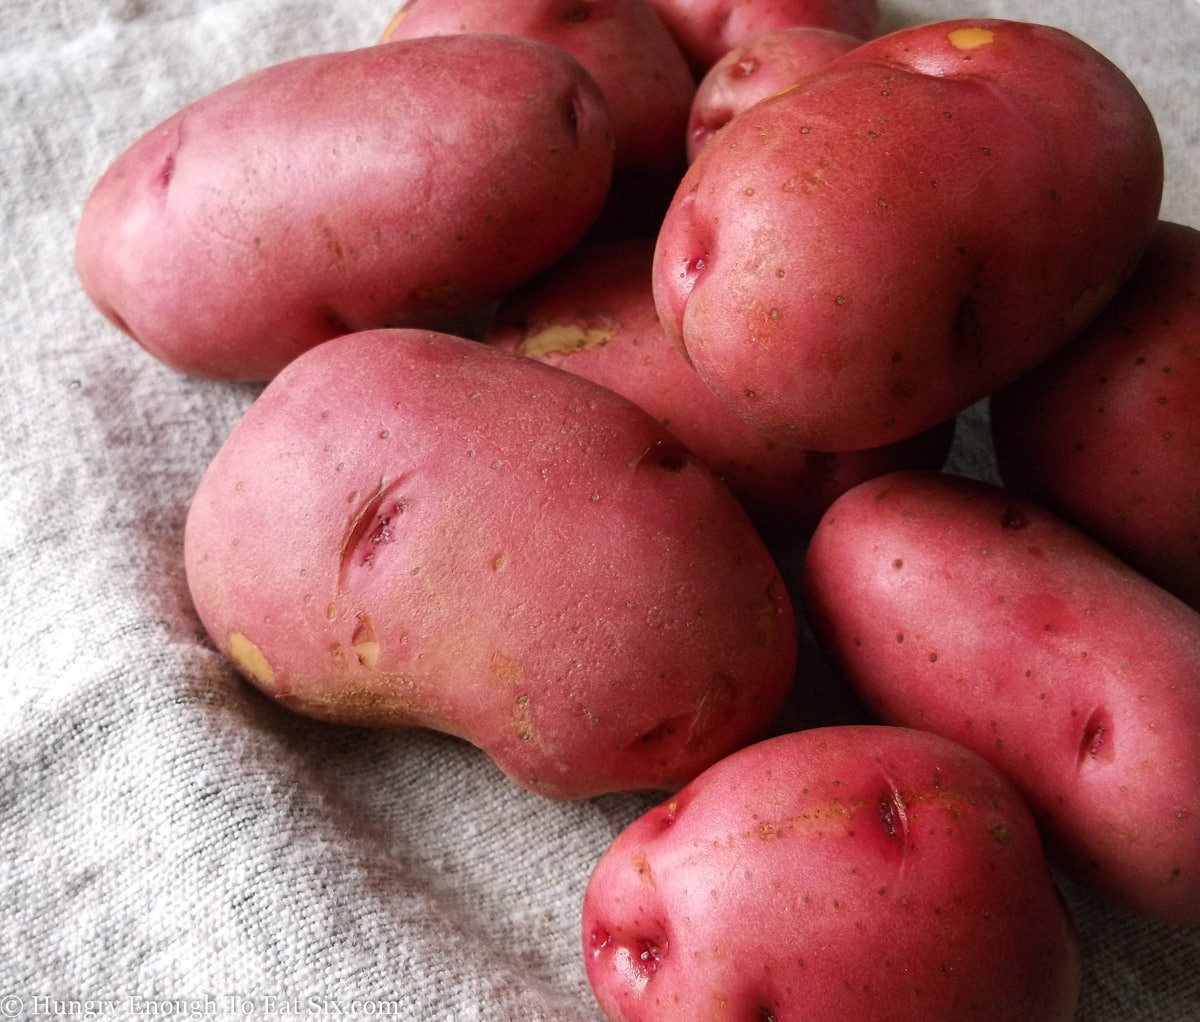 Red potatoes on a coarse cloth